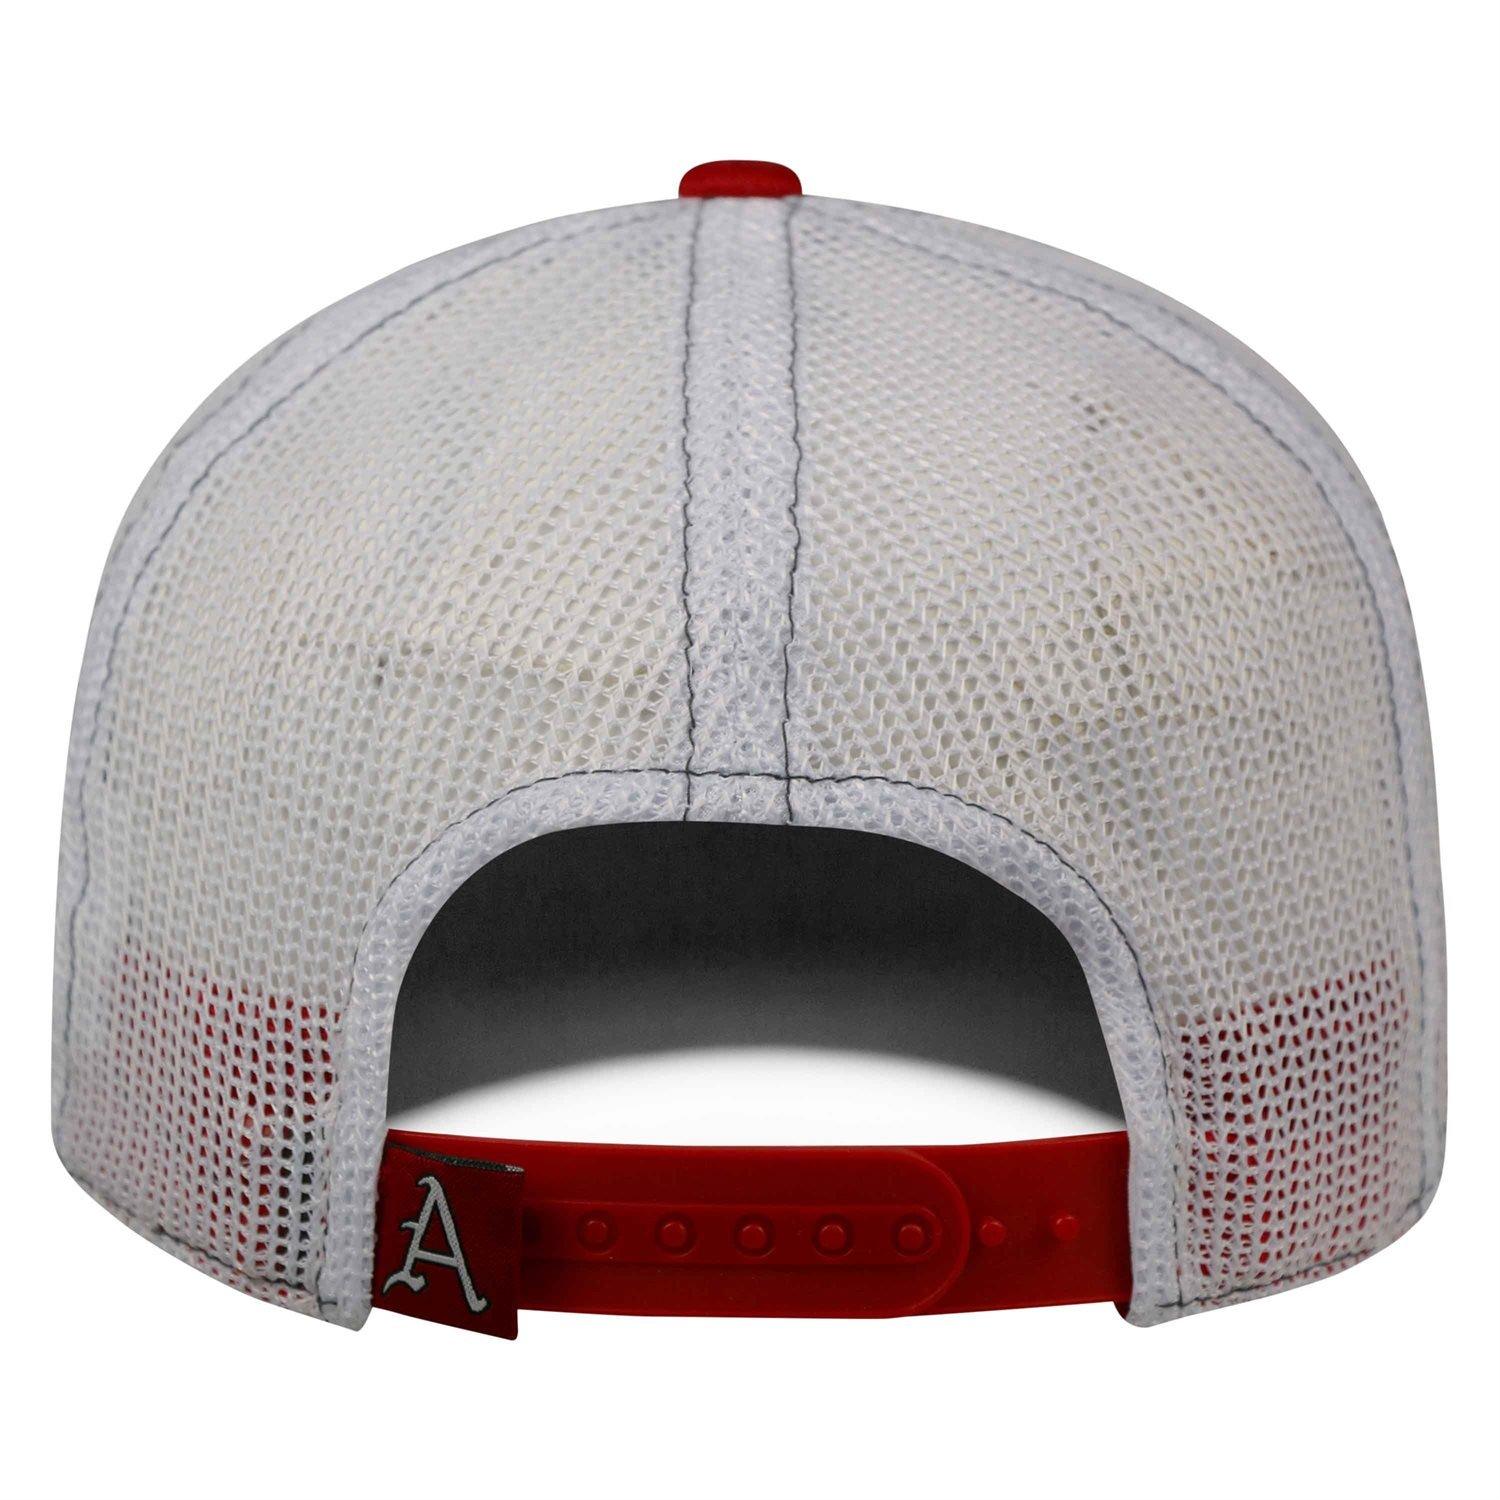 sneakers for cheap 708e4 0e5c7 Amazon.com   NCAA Adjustable Womens Glmor Hat Cap Top of The World   Sports    Outdoors